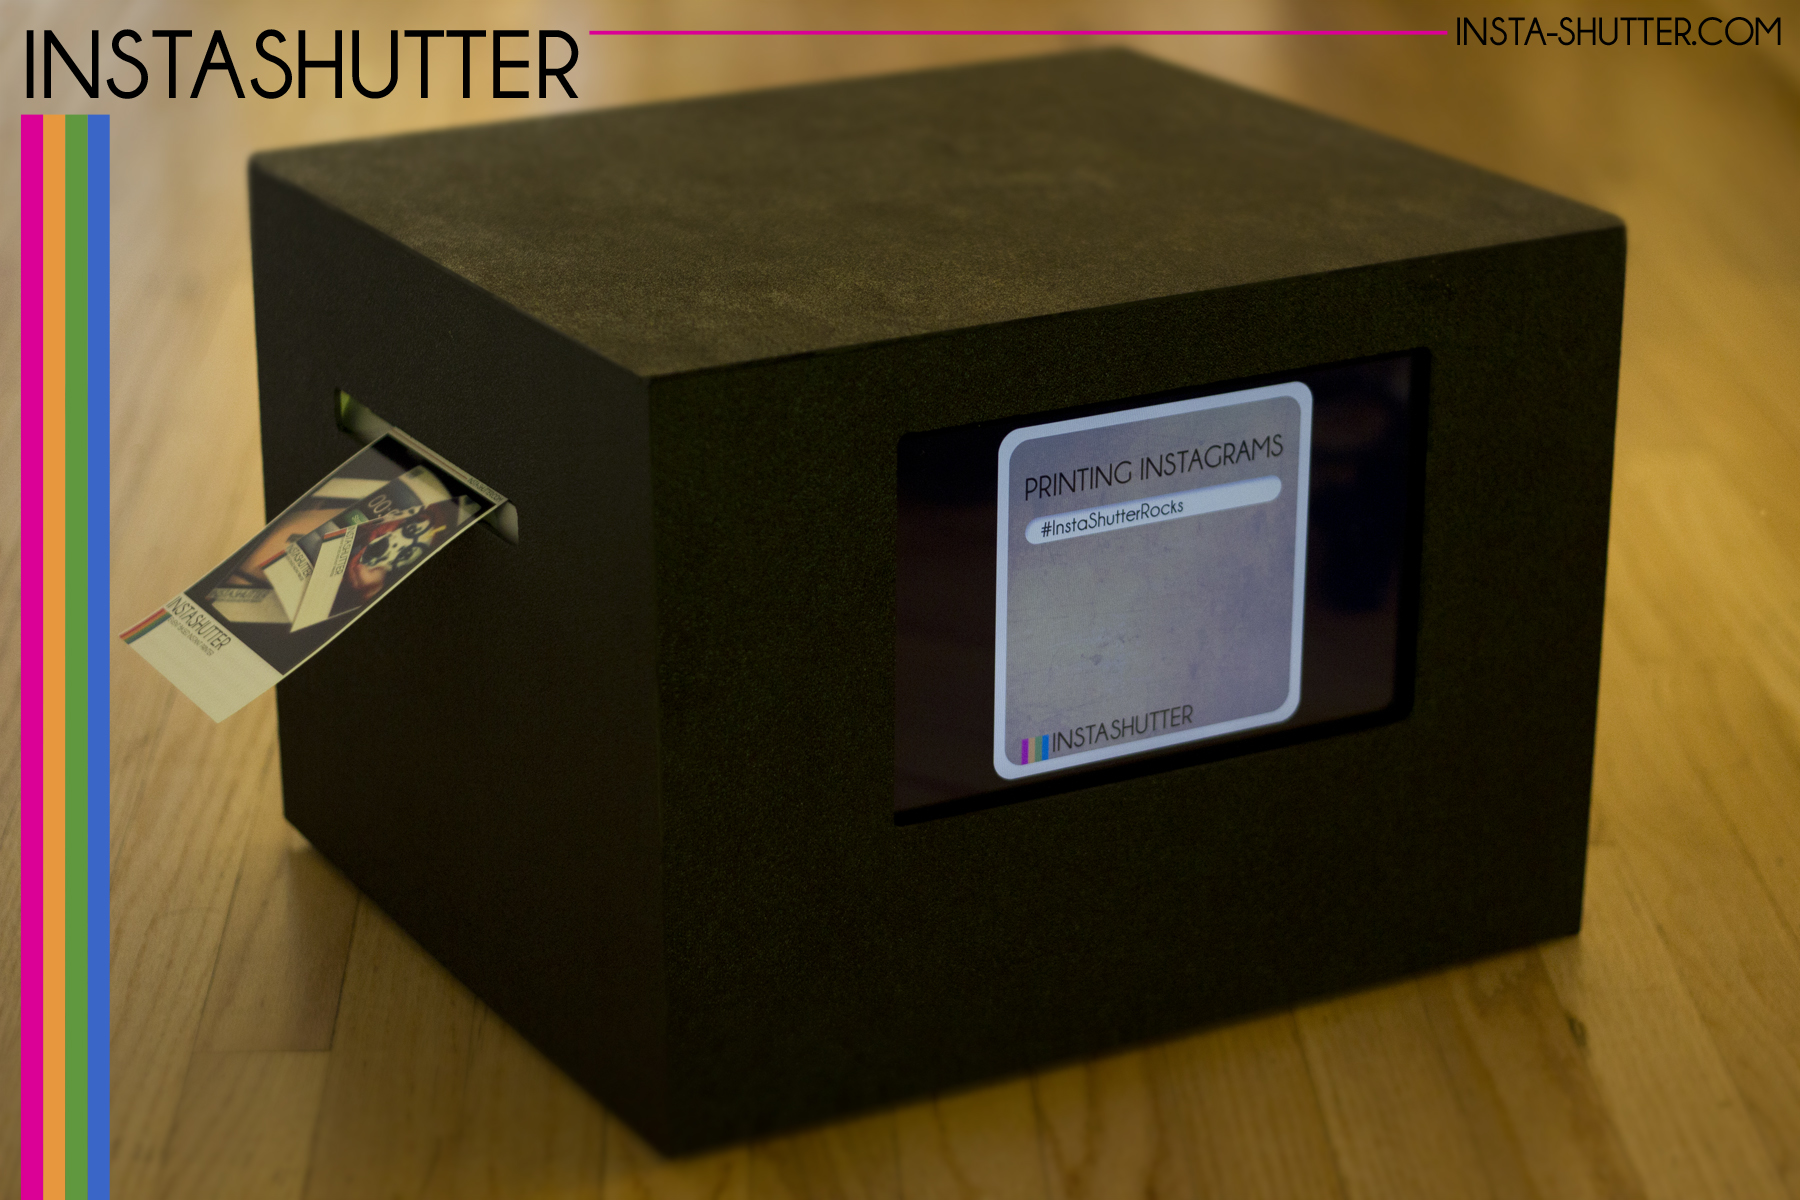 Insta-Shutter Cube | 4G Connection Prints Instagram Photos Instantly